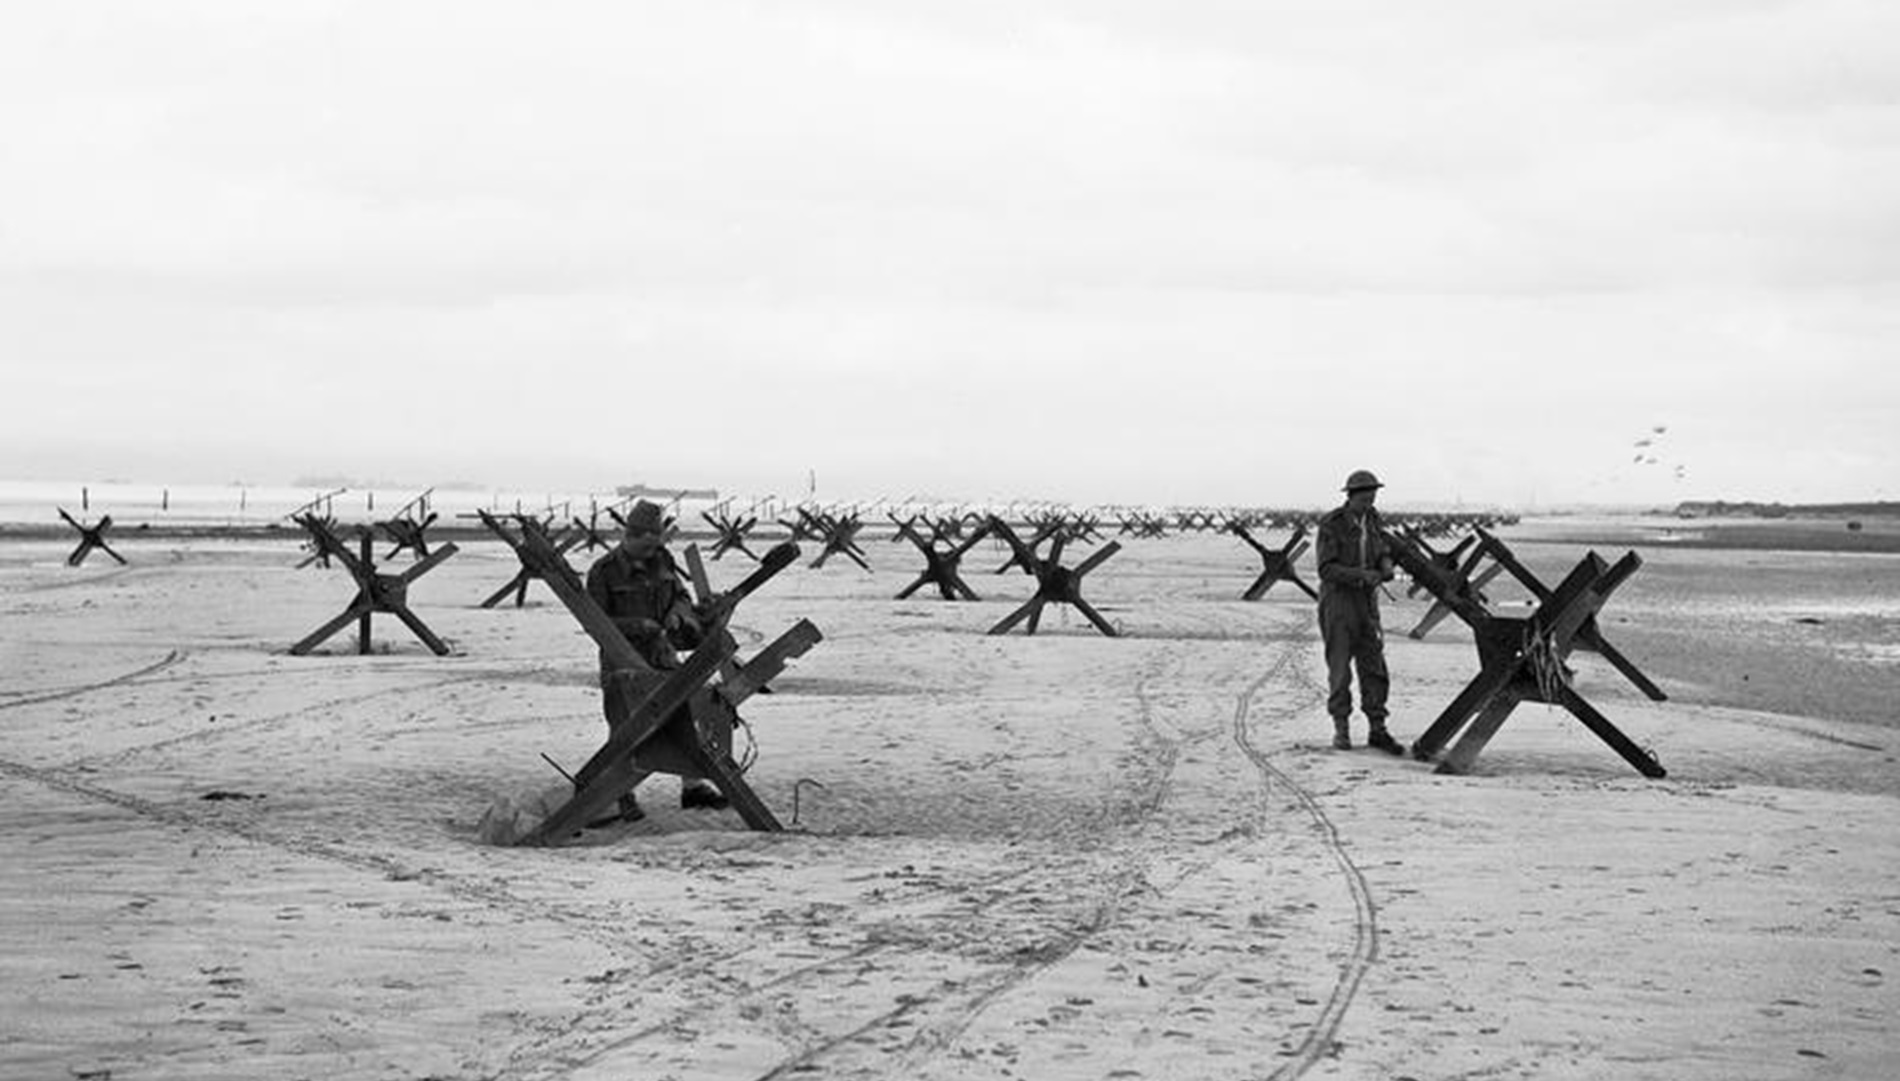 Royal Navy Commandos preparing to demolish beach obstacles designed to hinder the advance of an invading army.